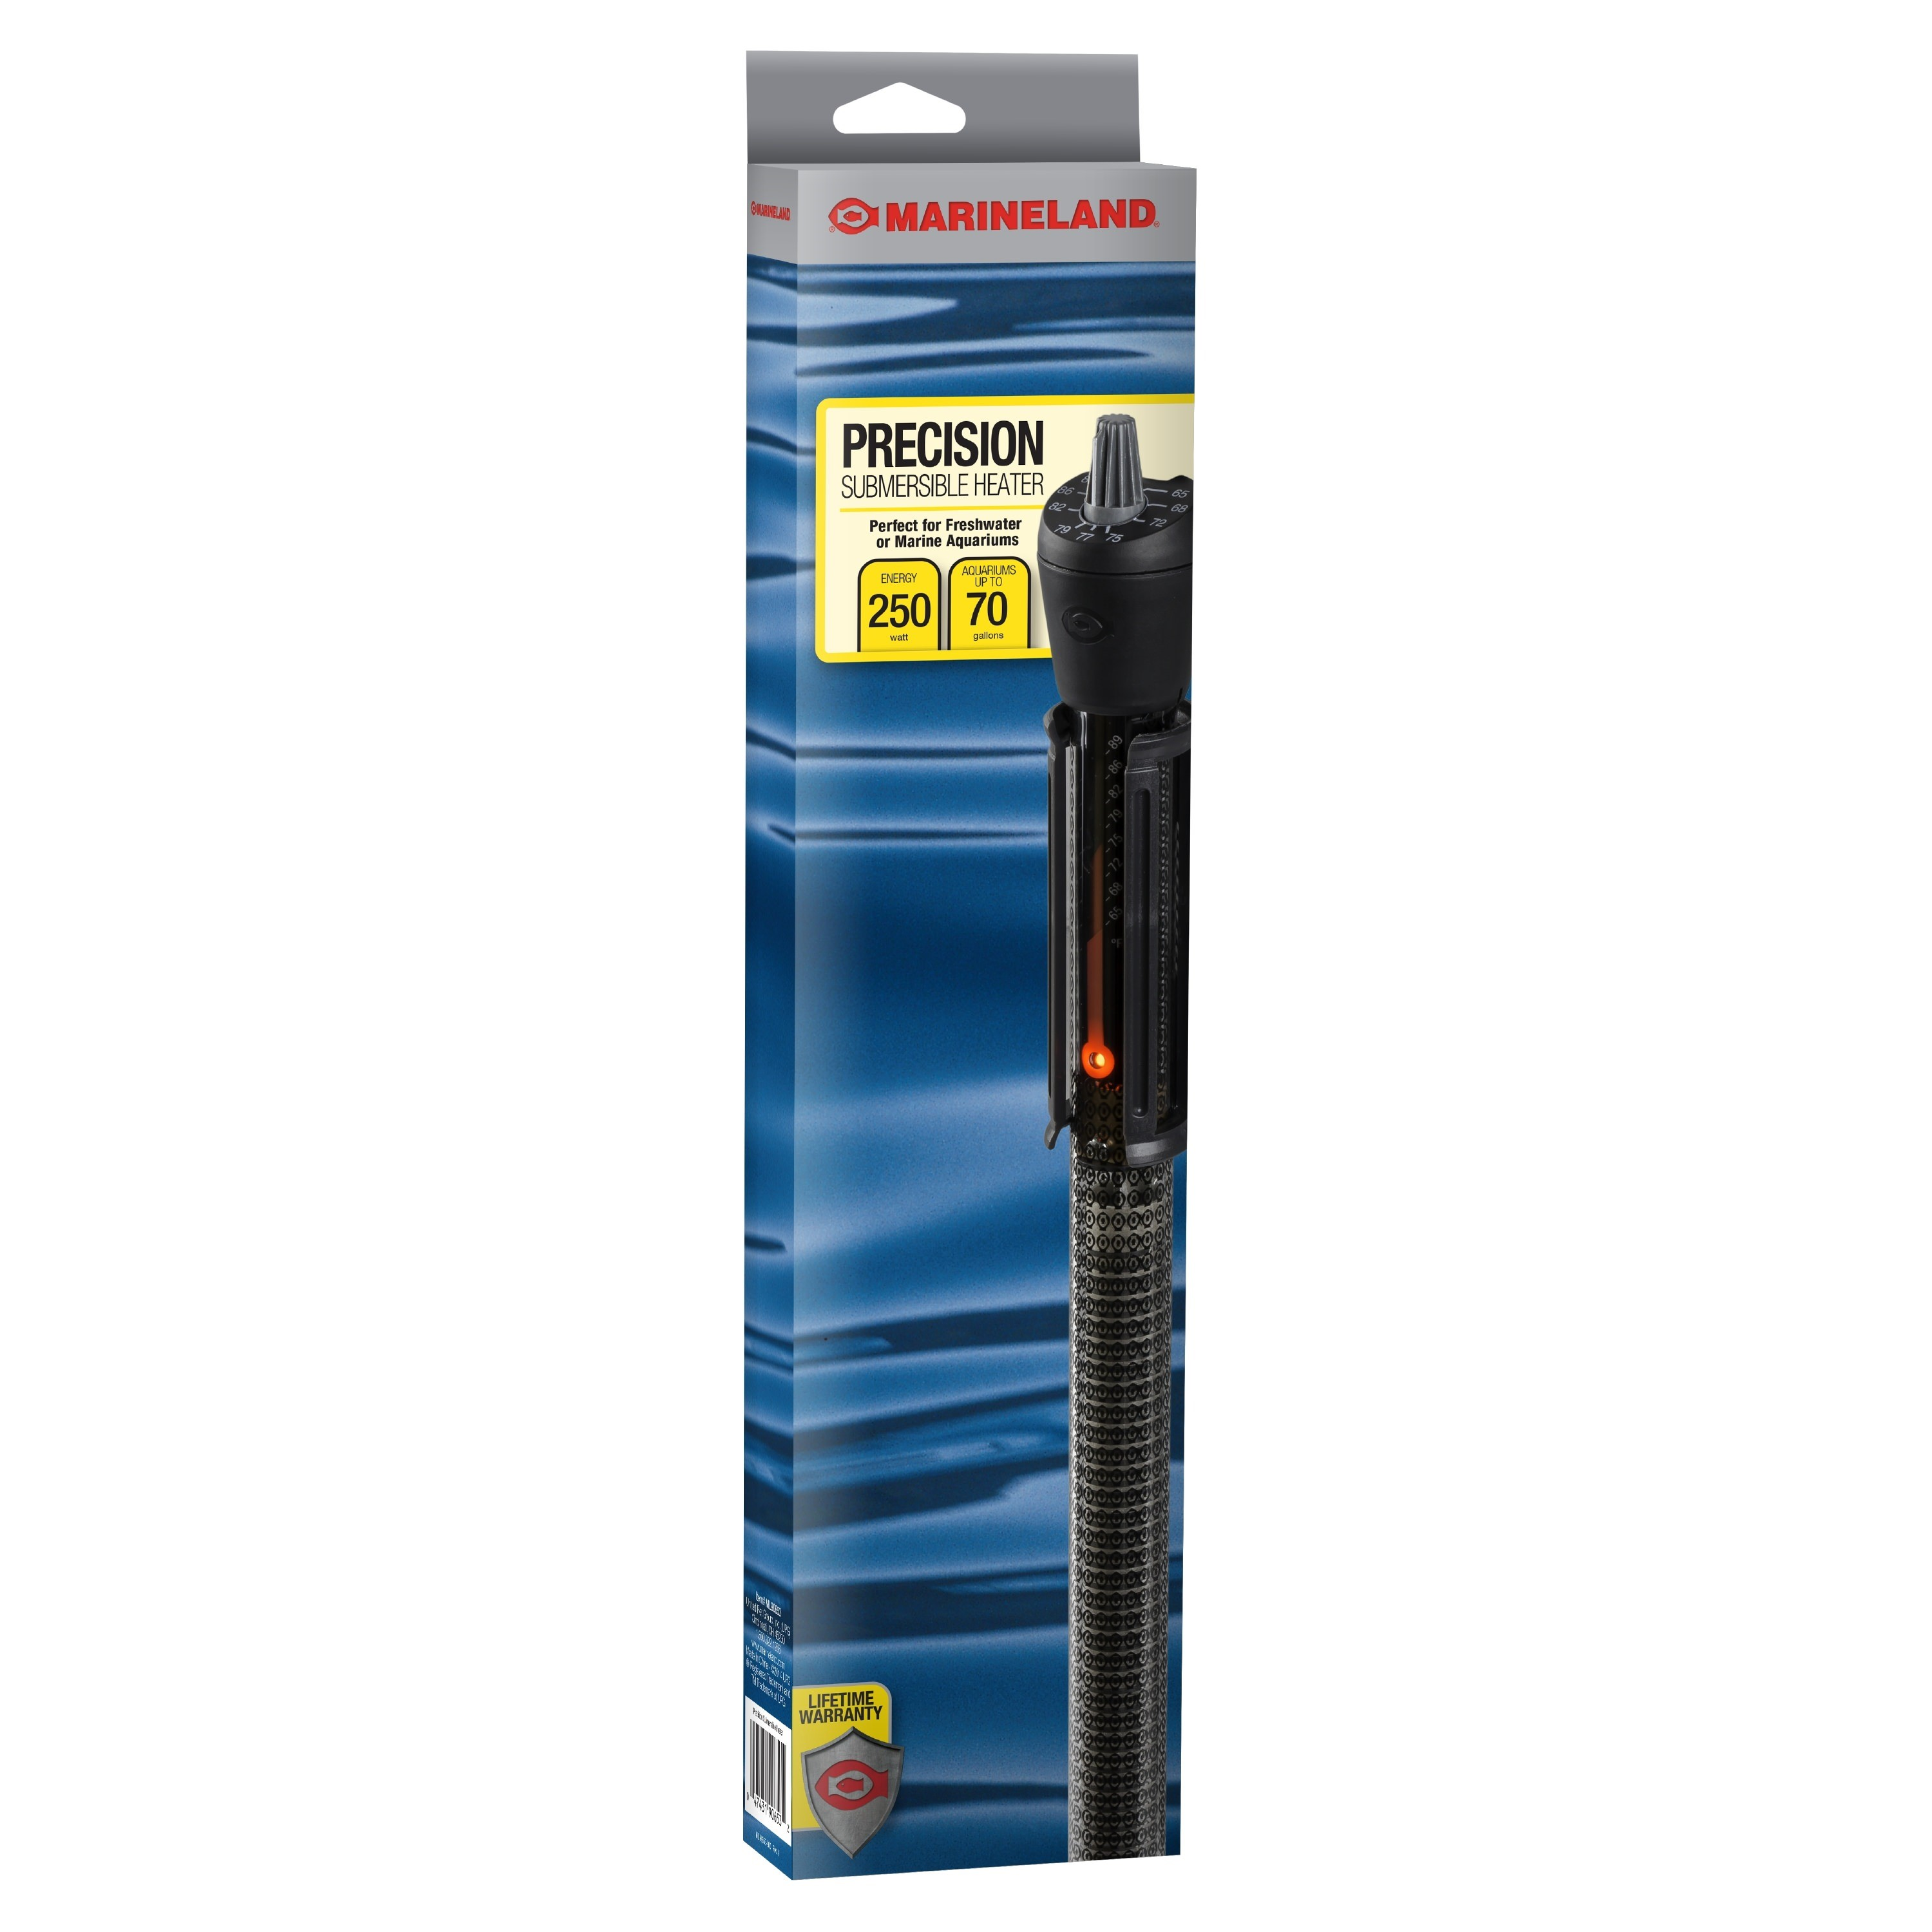 Marineland Precision Aquarium Heater, Up to 55 Gallons, 200-Watt